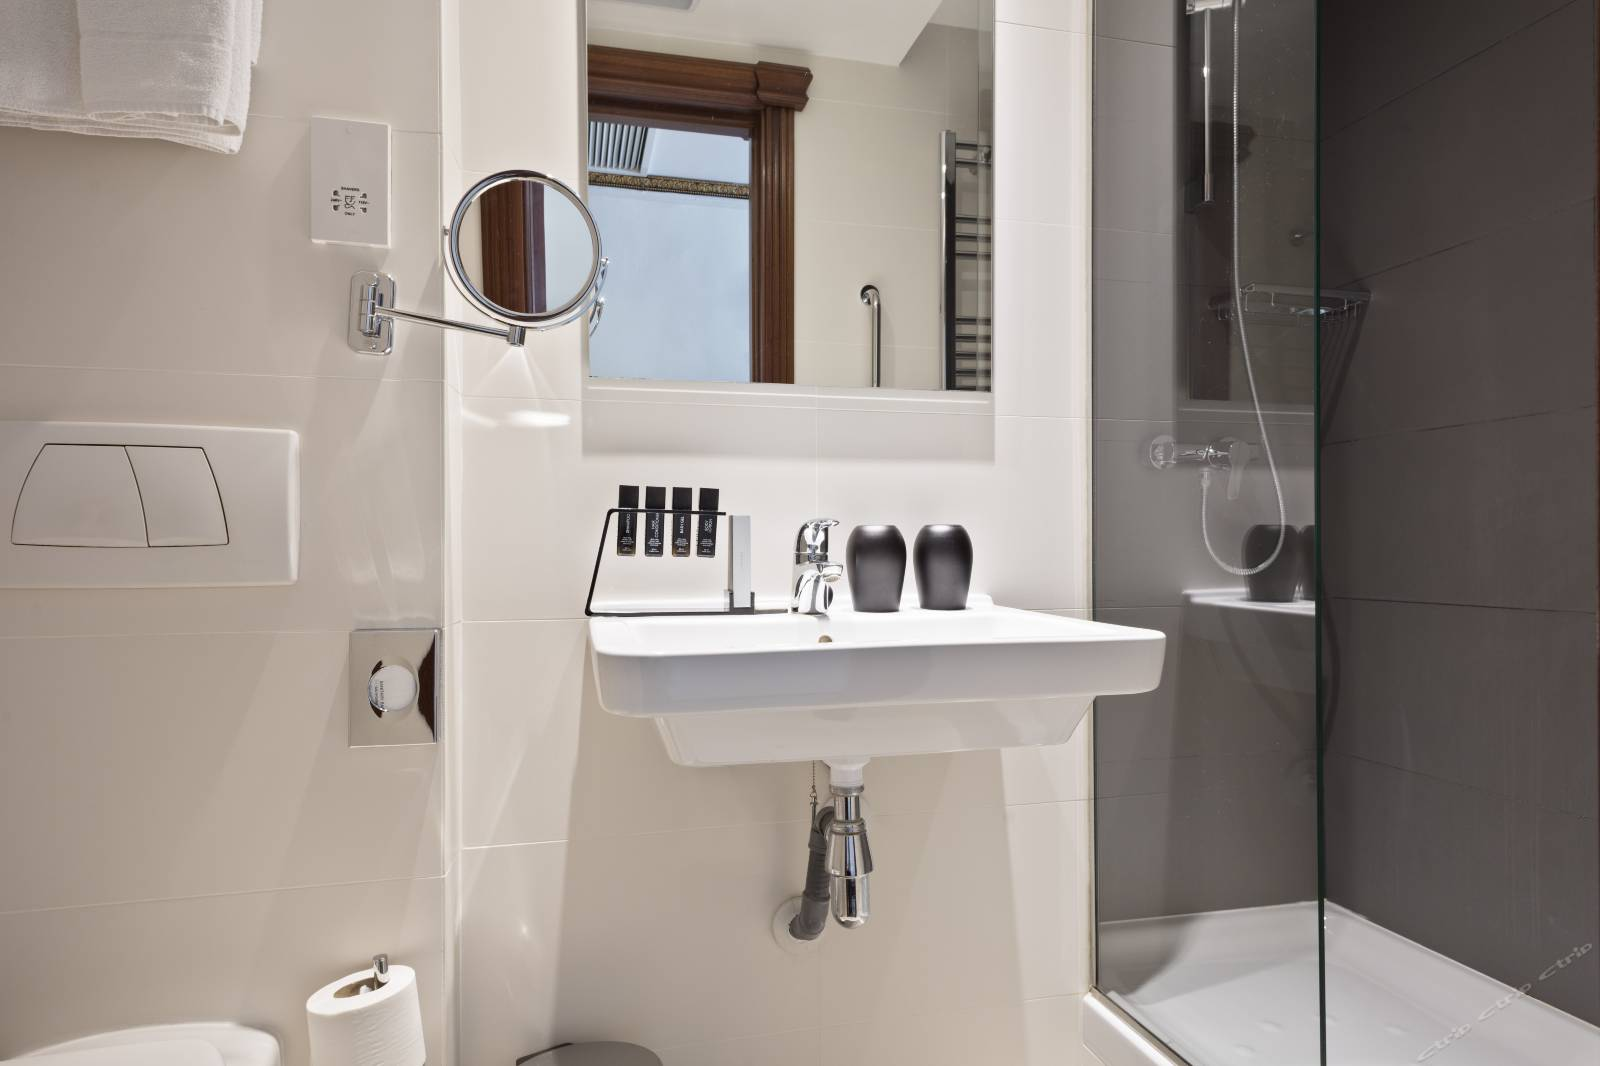 stable wall mounted basin luxury shop for washroom-13